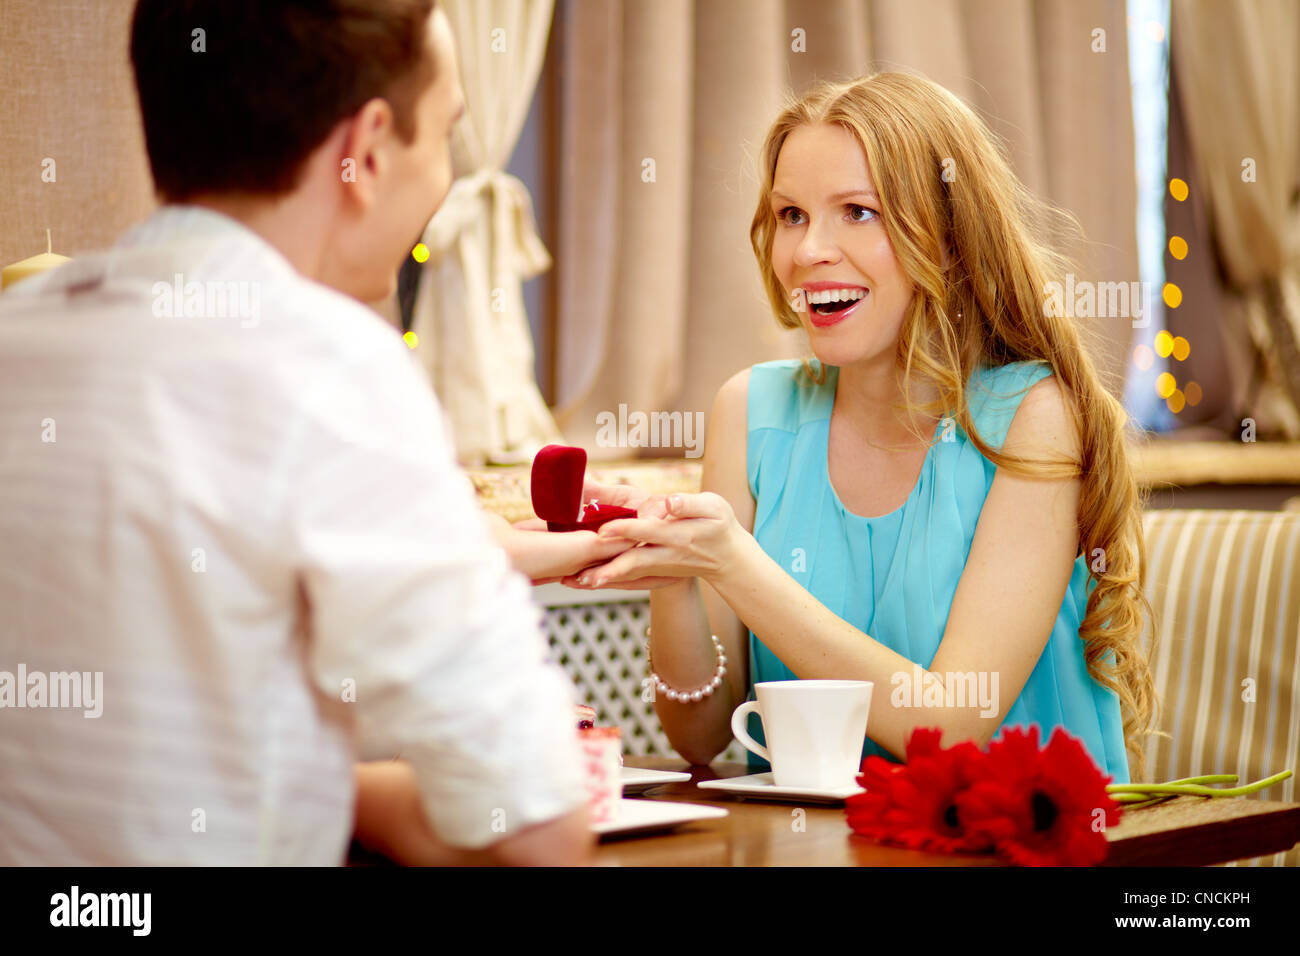 Astonished woman looking at her boyfriend showing gift at lunch - Stock Image